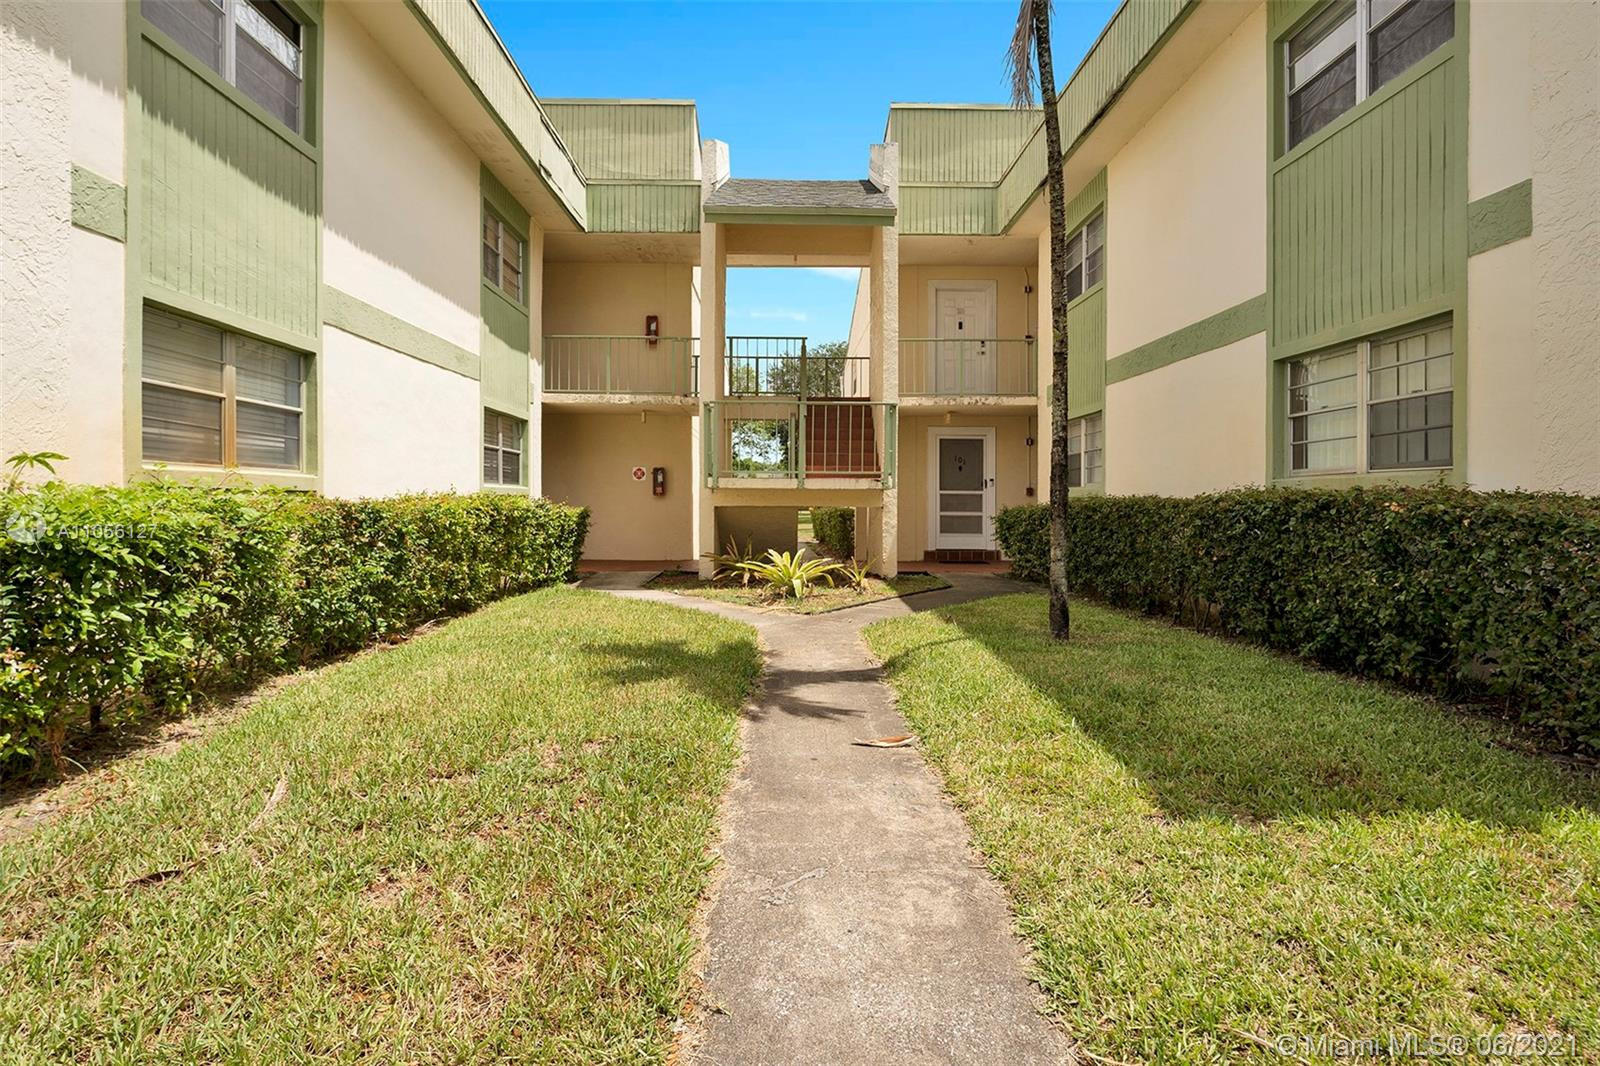 4113 NW 88 Unit 105, Coral Springs, Florida 33065